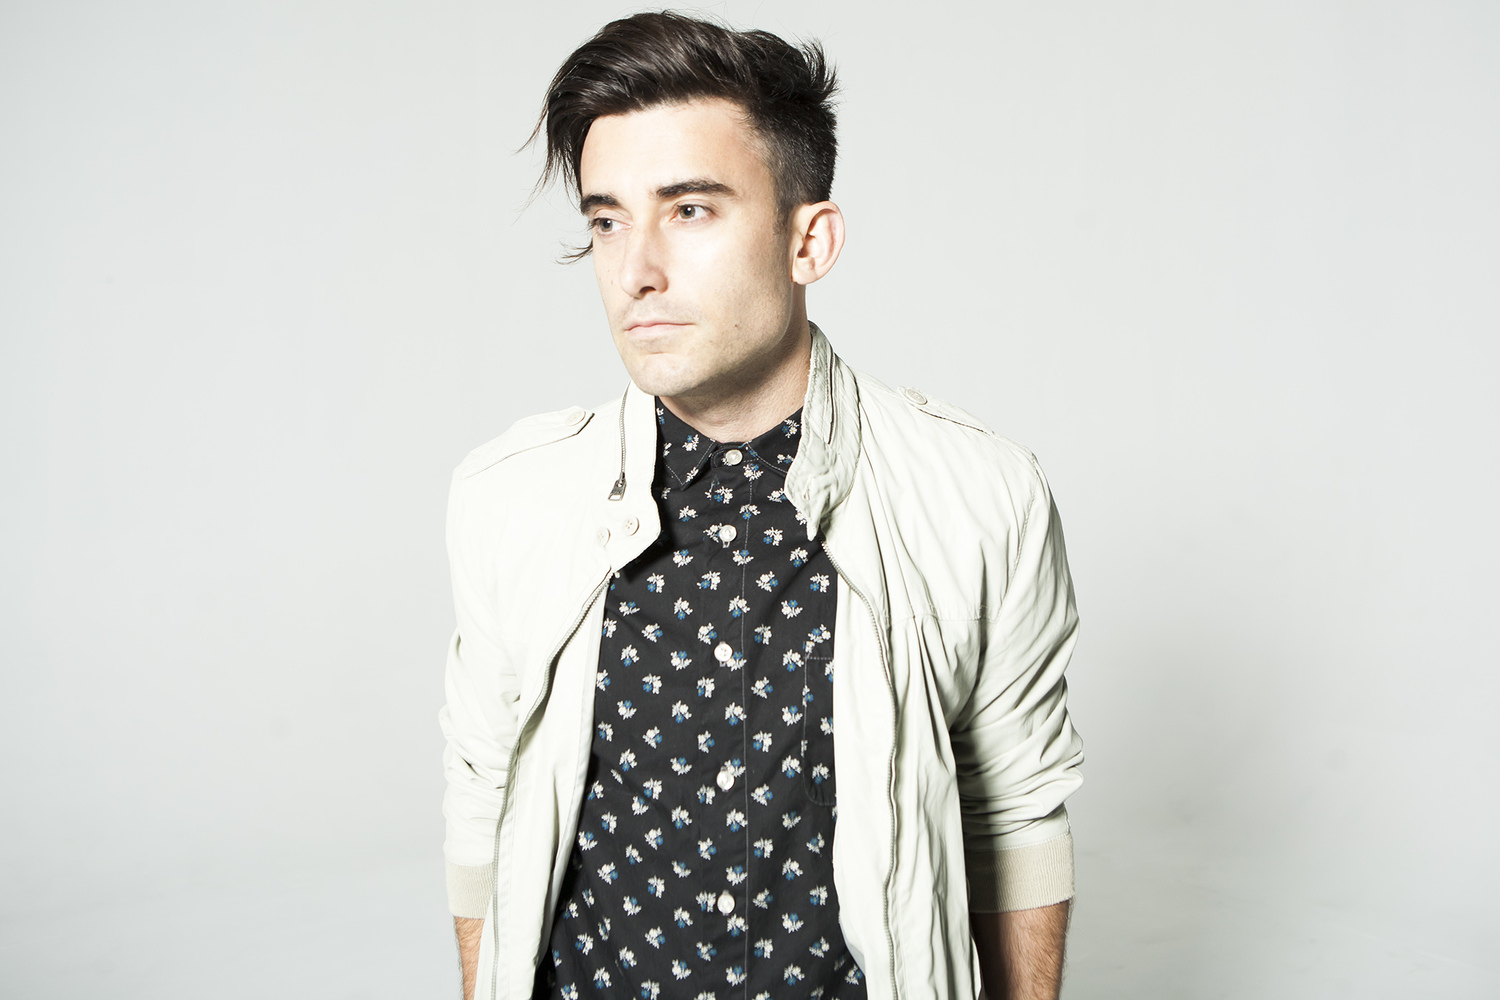 UpLift: Phil Wickham